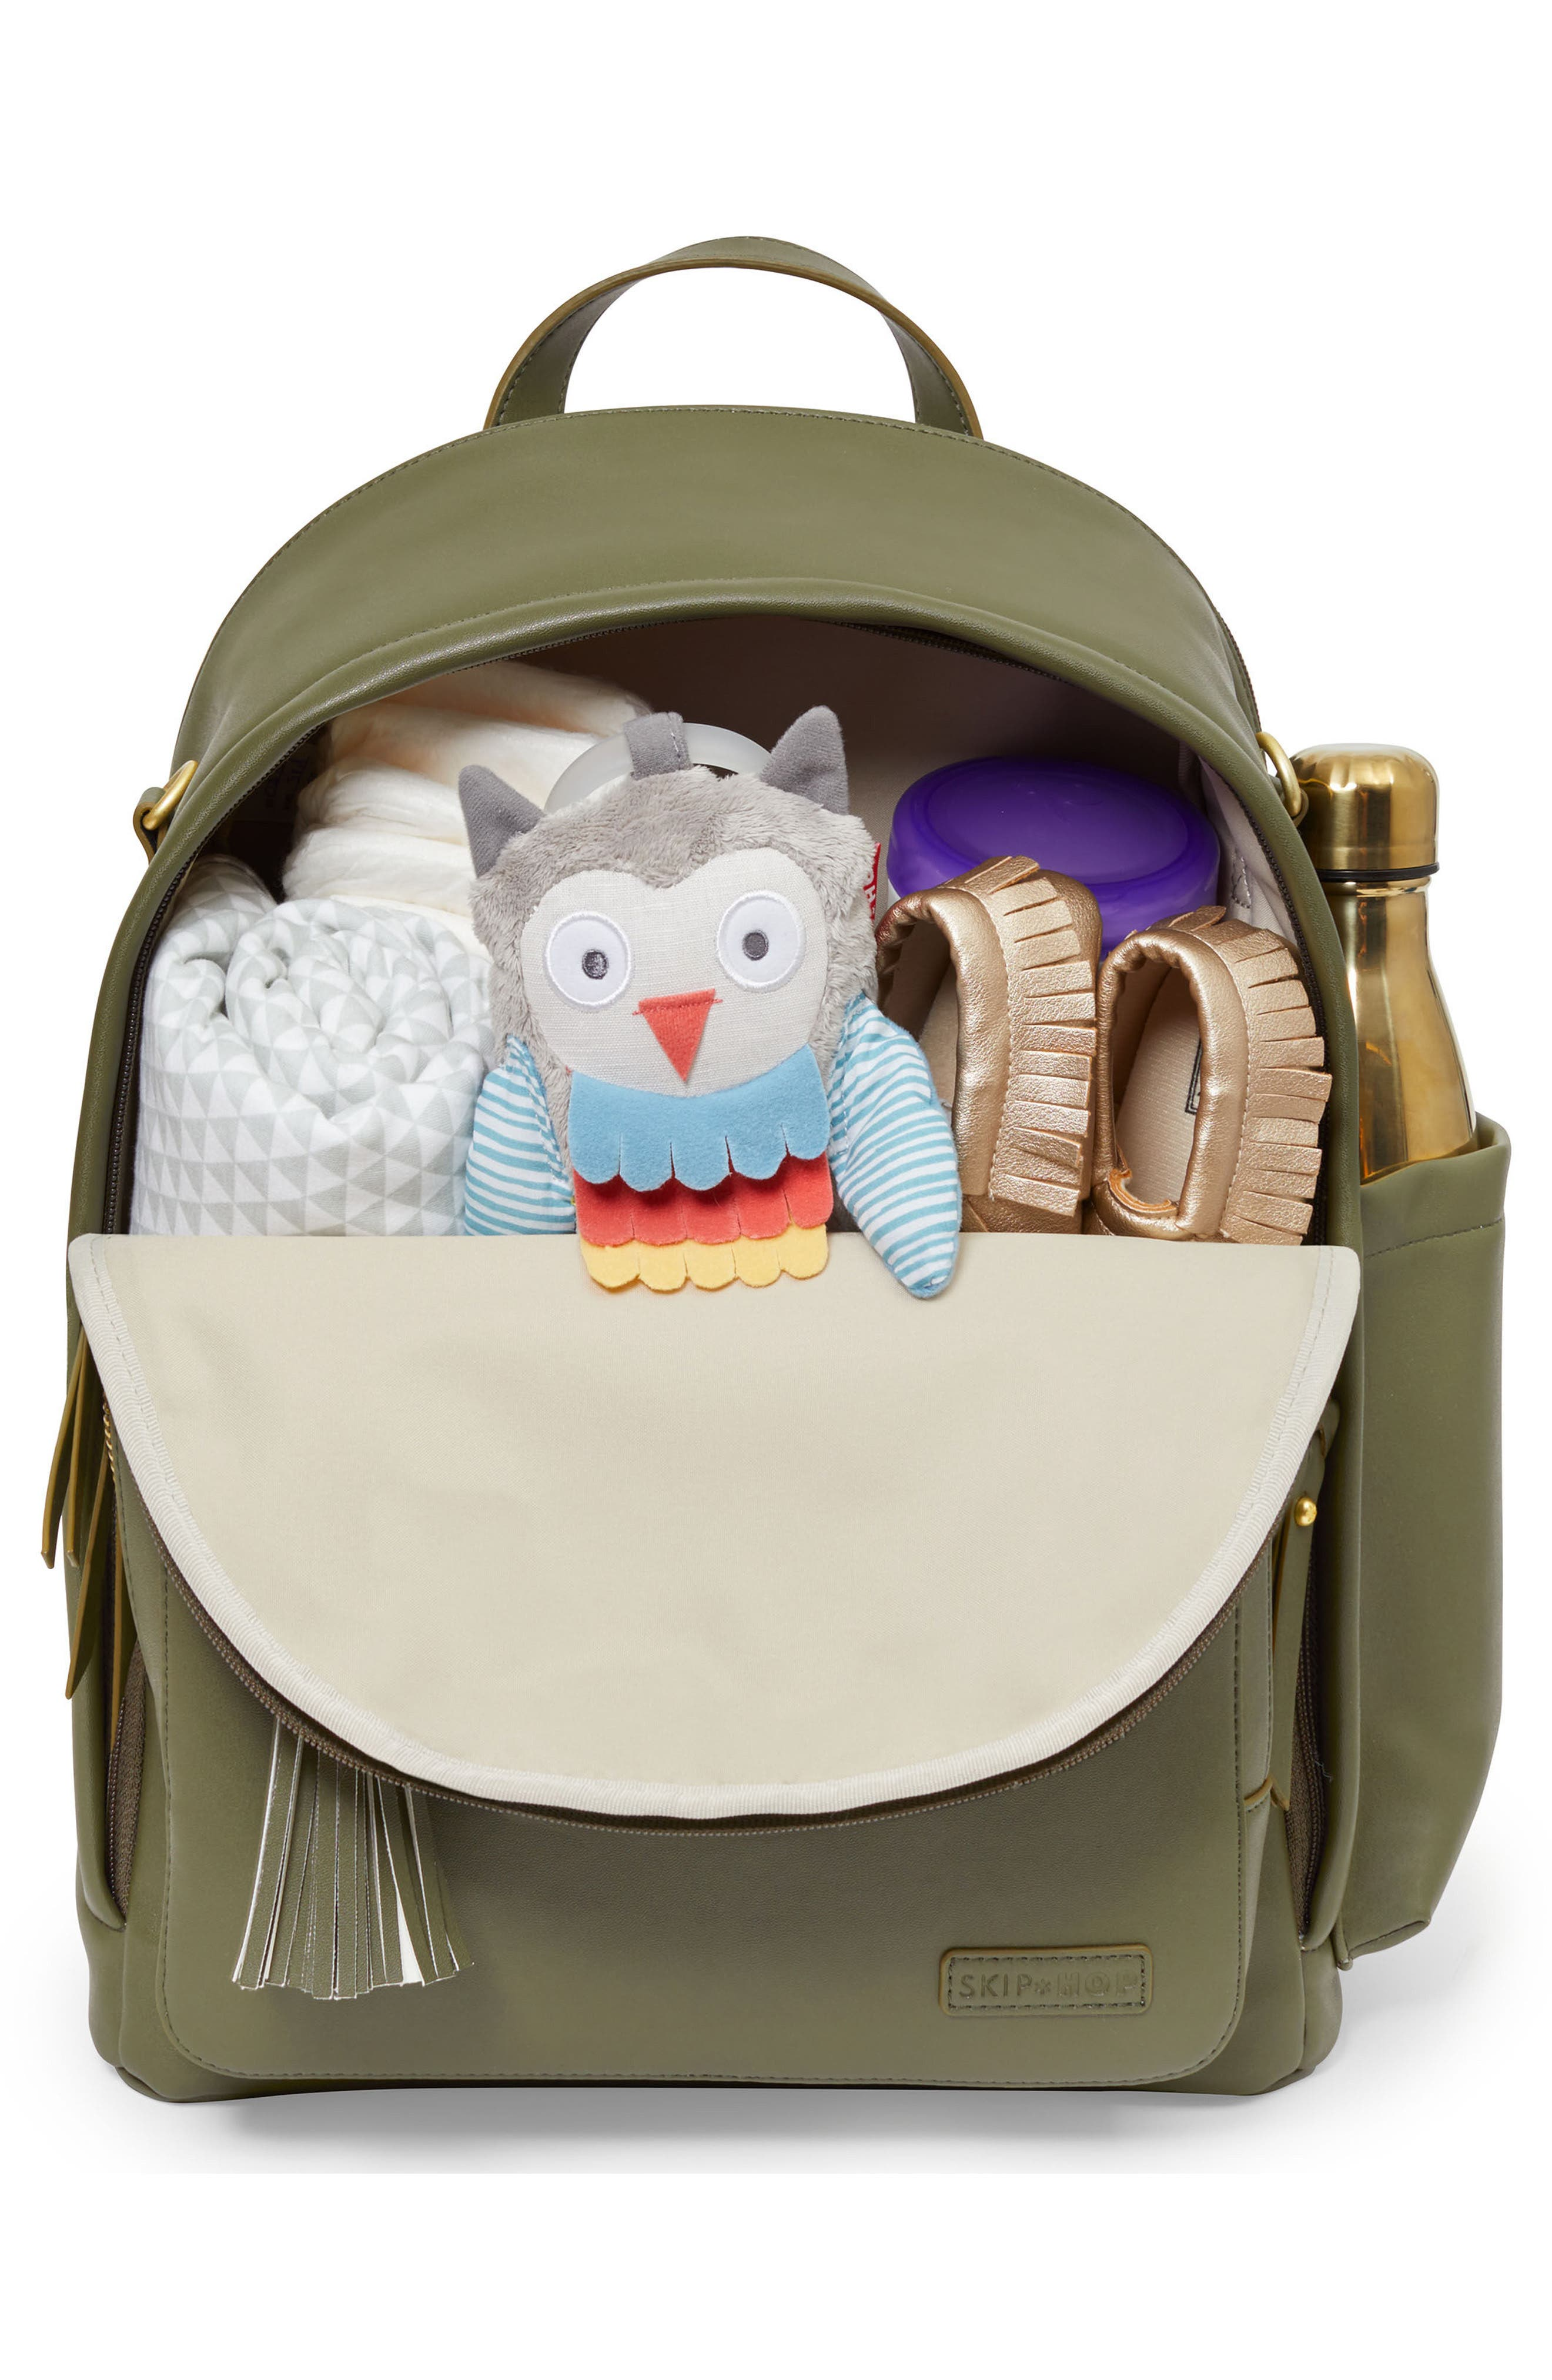 SKIP HOP,                             Greenwich Simply Chic Diaper Backpack,                             Alternate thumbnail 2, color,                             OLIVE